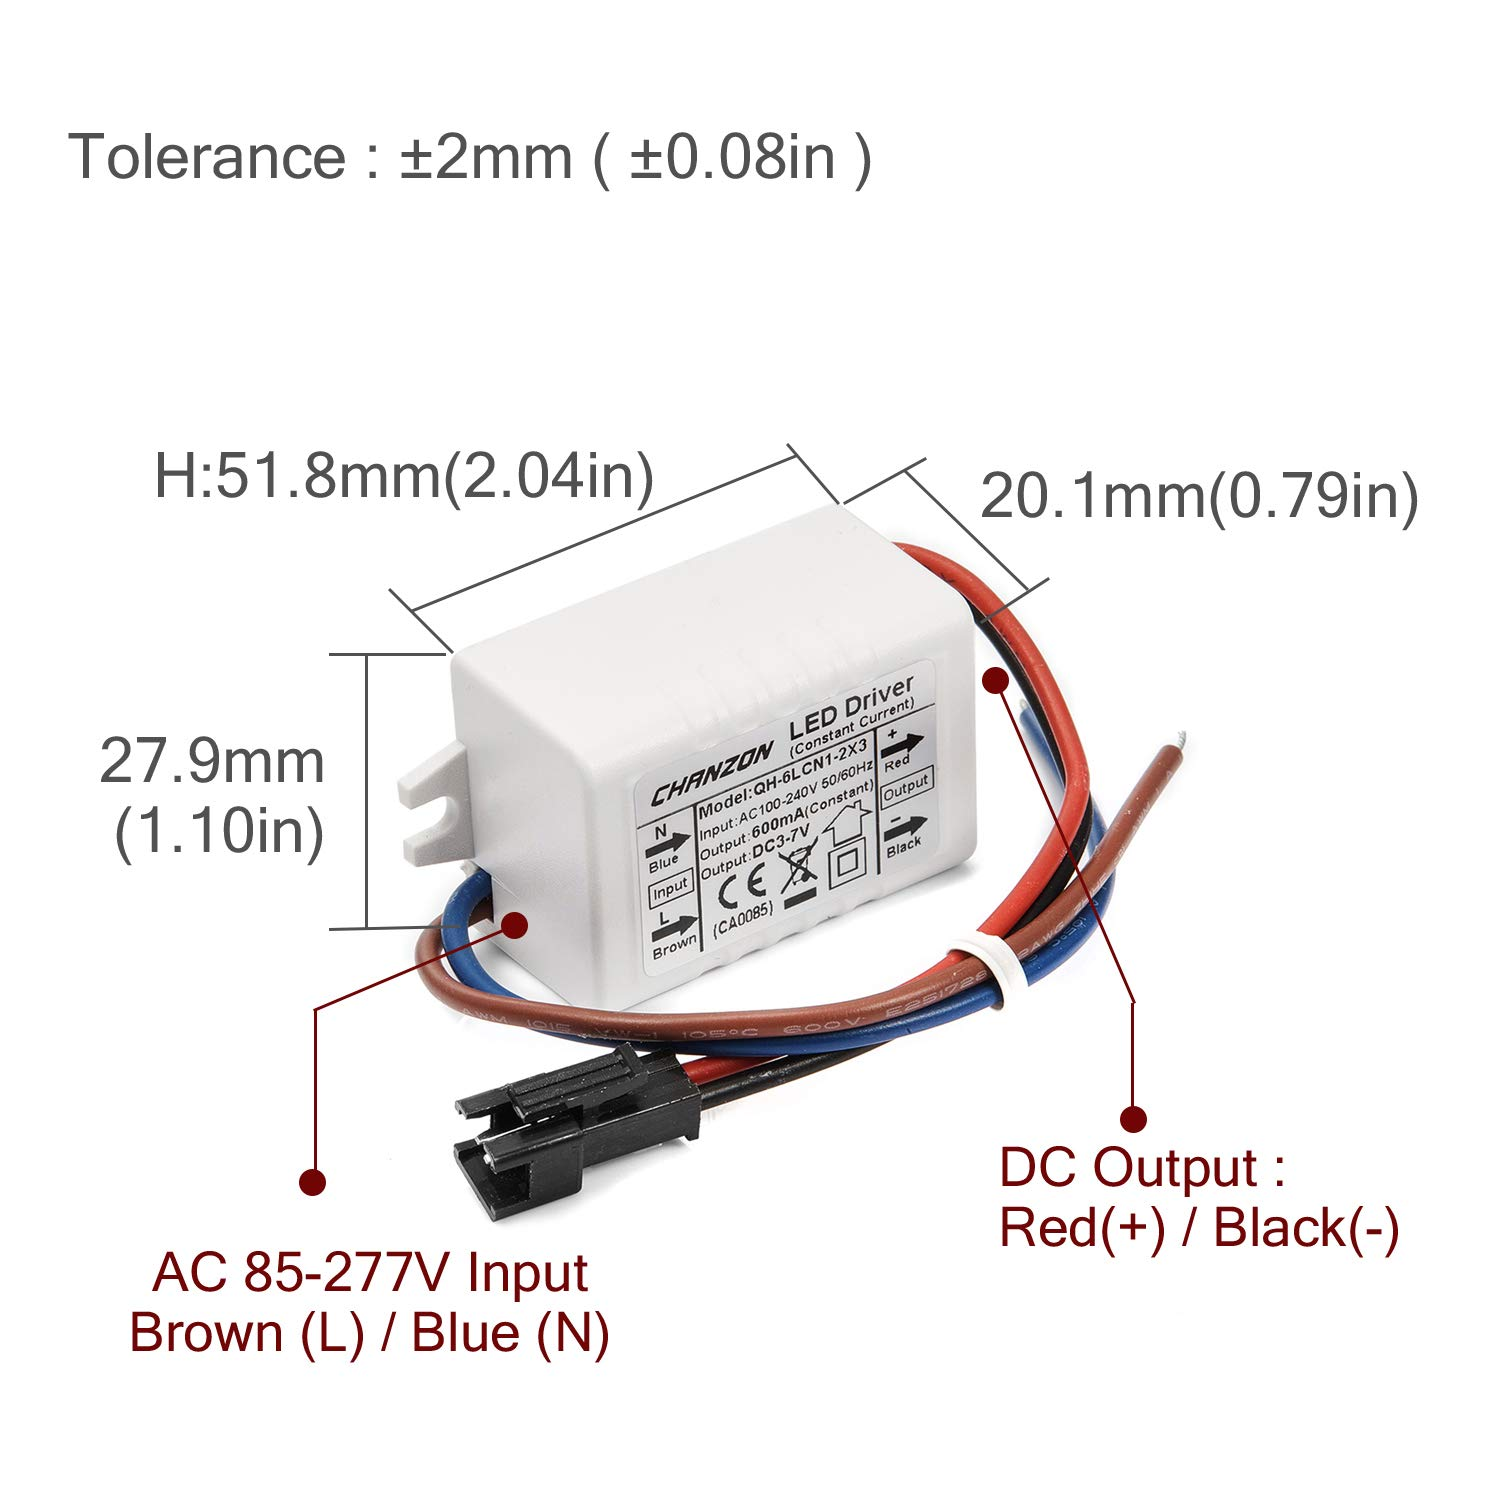 chanzon led driver 600ma (constant current output) 3v 7v (input 100 240v ac dc) (1 2) x3w 3w 6w power supply 600 ma lighting transformer drivers for  bin pin led light bulb 3w(30w halogen